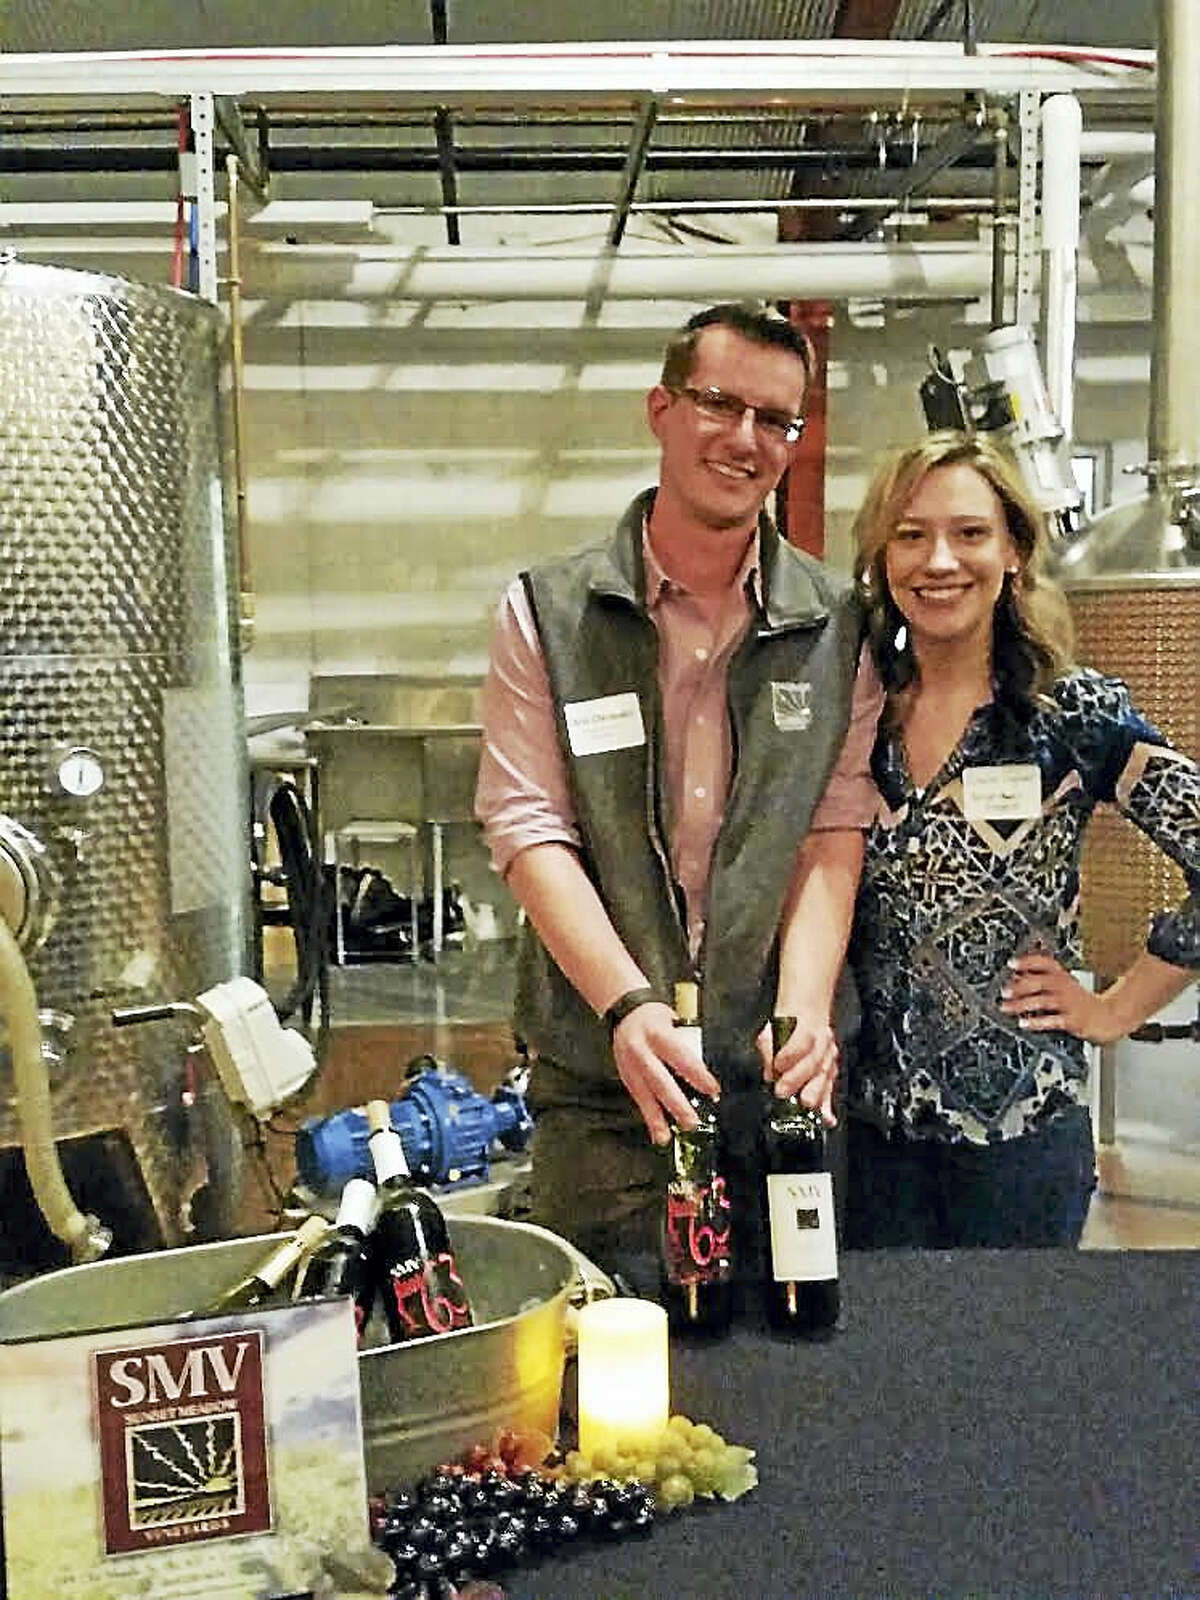 """Christopher Chichester and Emilia Jaguera of Sunset Meadow Vineyards of Goshen introduced about 100 visitors to their vintages at culture blog Unlocking Litchfield's """"First Birthday"""" party at Litchfield Distillery ,at 569 Bantam Rd., in Litchfield on Saturday evening. Activities included speeches from Ross as well as the 2003-season """"American Idol"""" contestant Kimberley Locke and etiquette lecturer Karen Thomas of Torrington. Photo by Noel Ambery"""